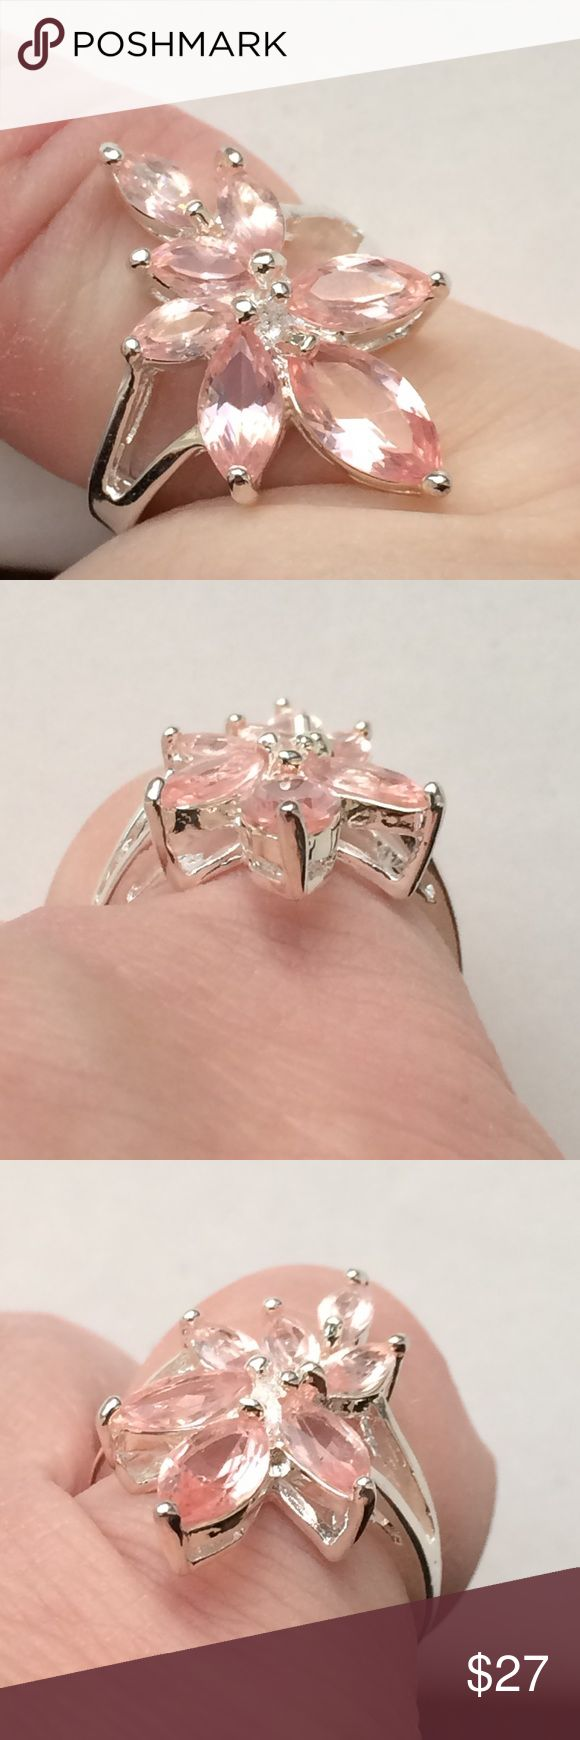 New🔥Blush Pink Topaz  Silver bi-rail flower Ring Brand new! 🔥Genuine Pink Topaz Flower Cocktail Ring size 7. tests out silver but I cannot find the .925 stamp. (Price reflects) 7 fancy faceted marquise make up this lovely blush pink stone bi-rail ring . 🌷🌷FLASH ! nwt!🌷✔️🎁Earns a free new mystery thank you gift too! ✔️top rated trusted seller ✔️ top rated trusted seller ✔️Ships quickly ! ✔️Comes in a new jewelry gift box ✔️price firm thanks 😊✔️🌷🌷 manufacturer Jewelry Rings